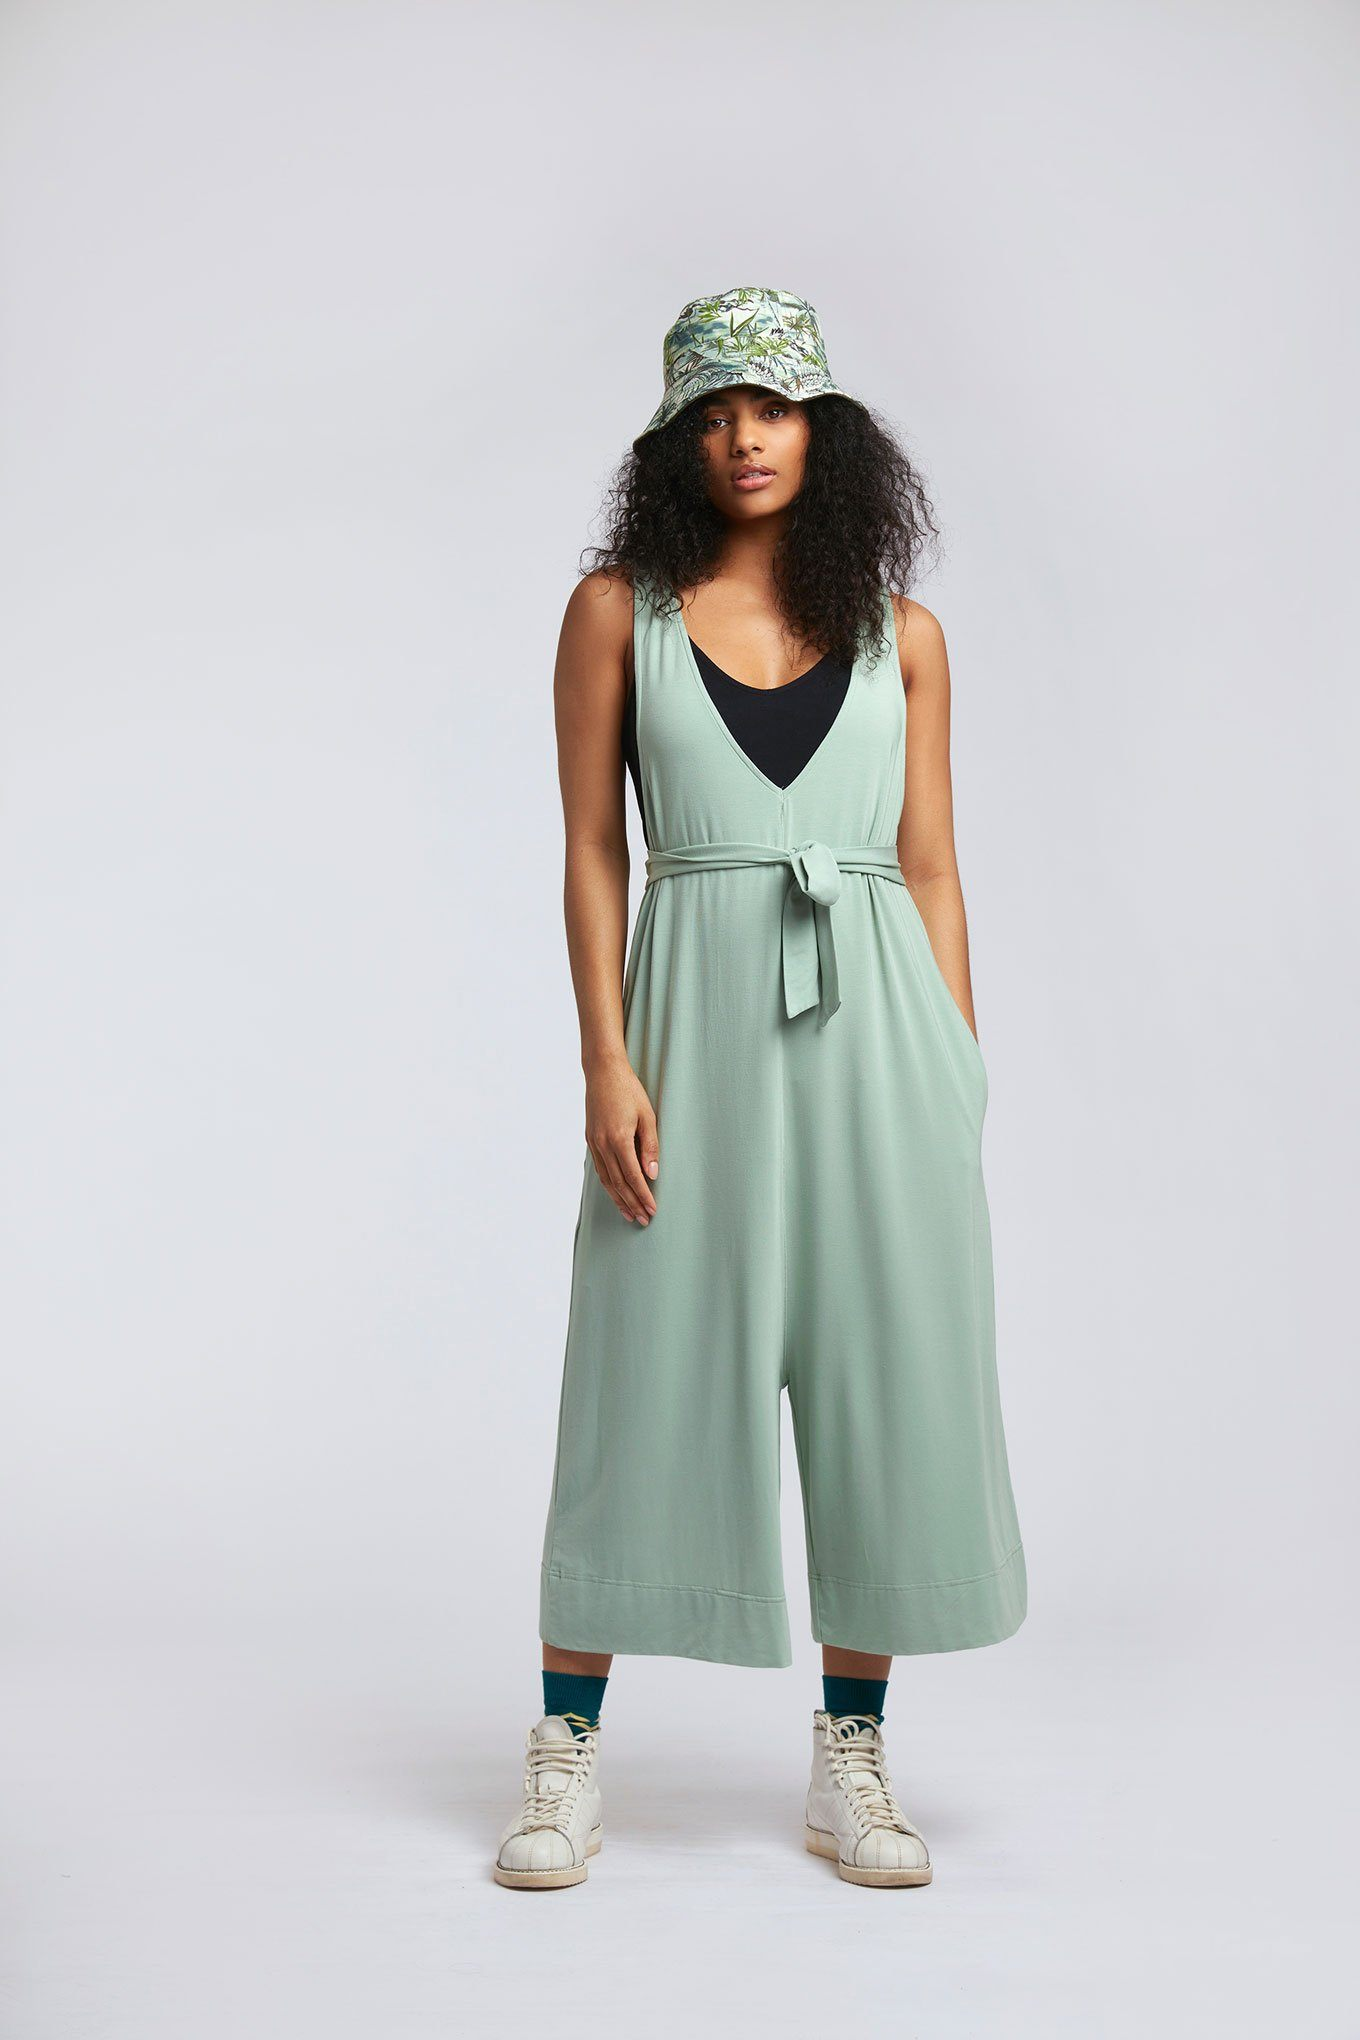 Jumpsuit - MOLLIE Modal Jumpsuit Seagrass